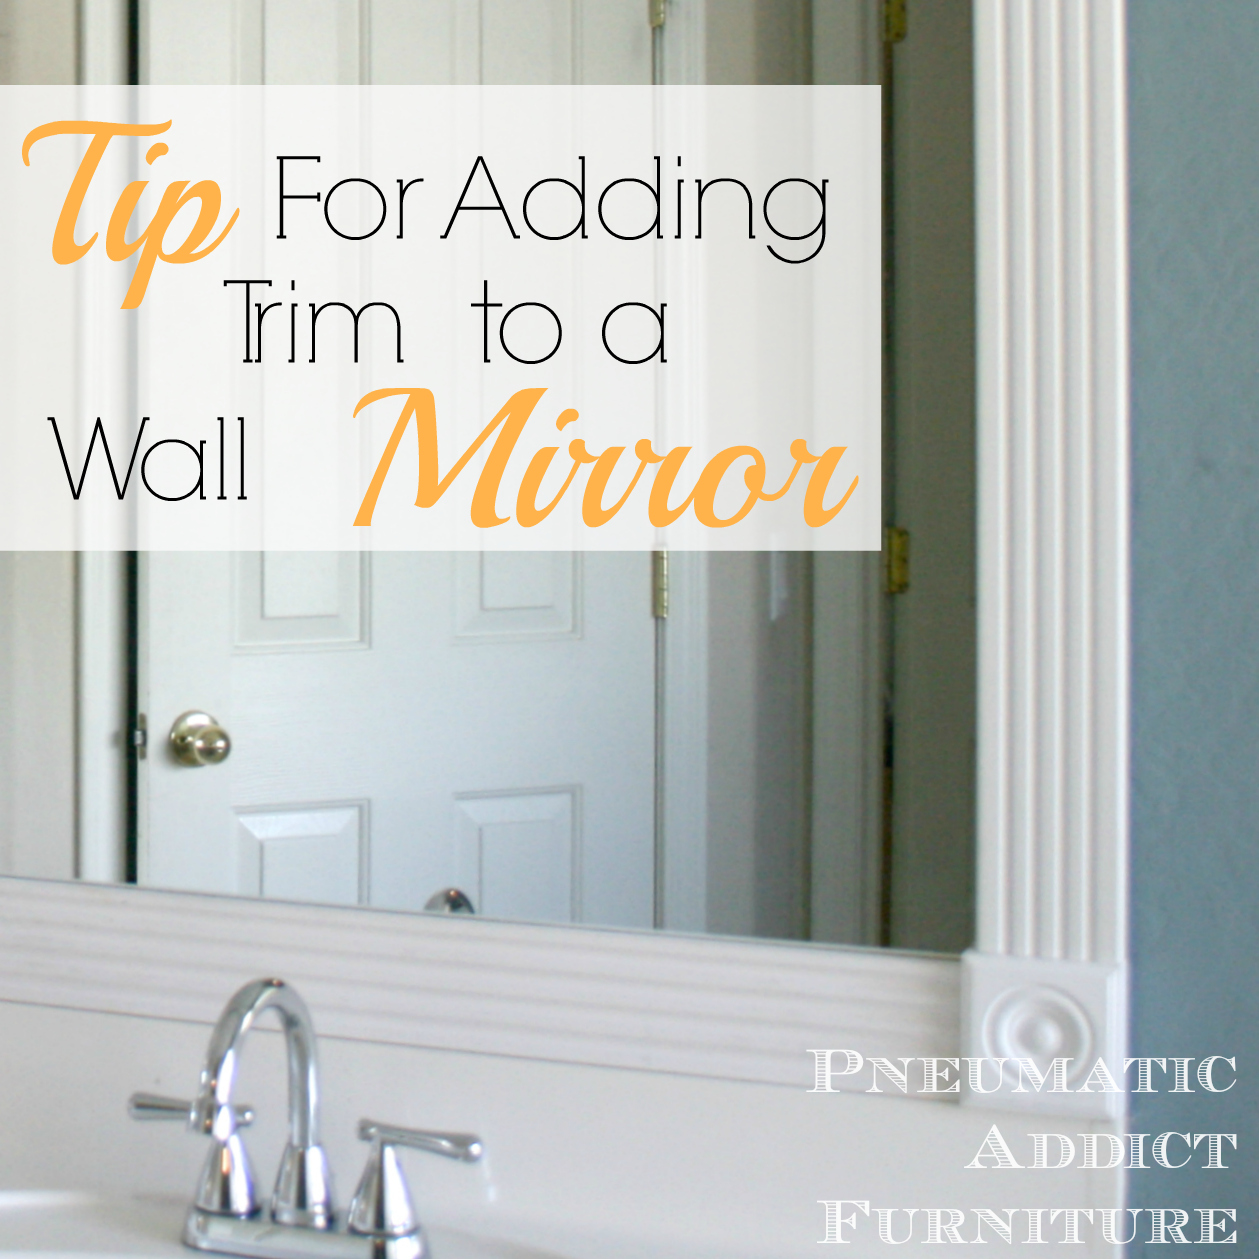 Pneumatic Addict Tip For Adding Trim To A Wall Mirror